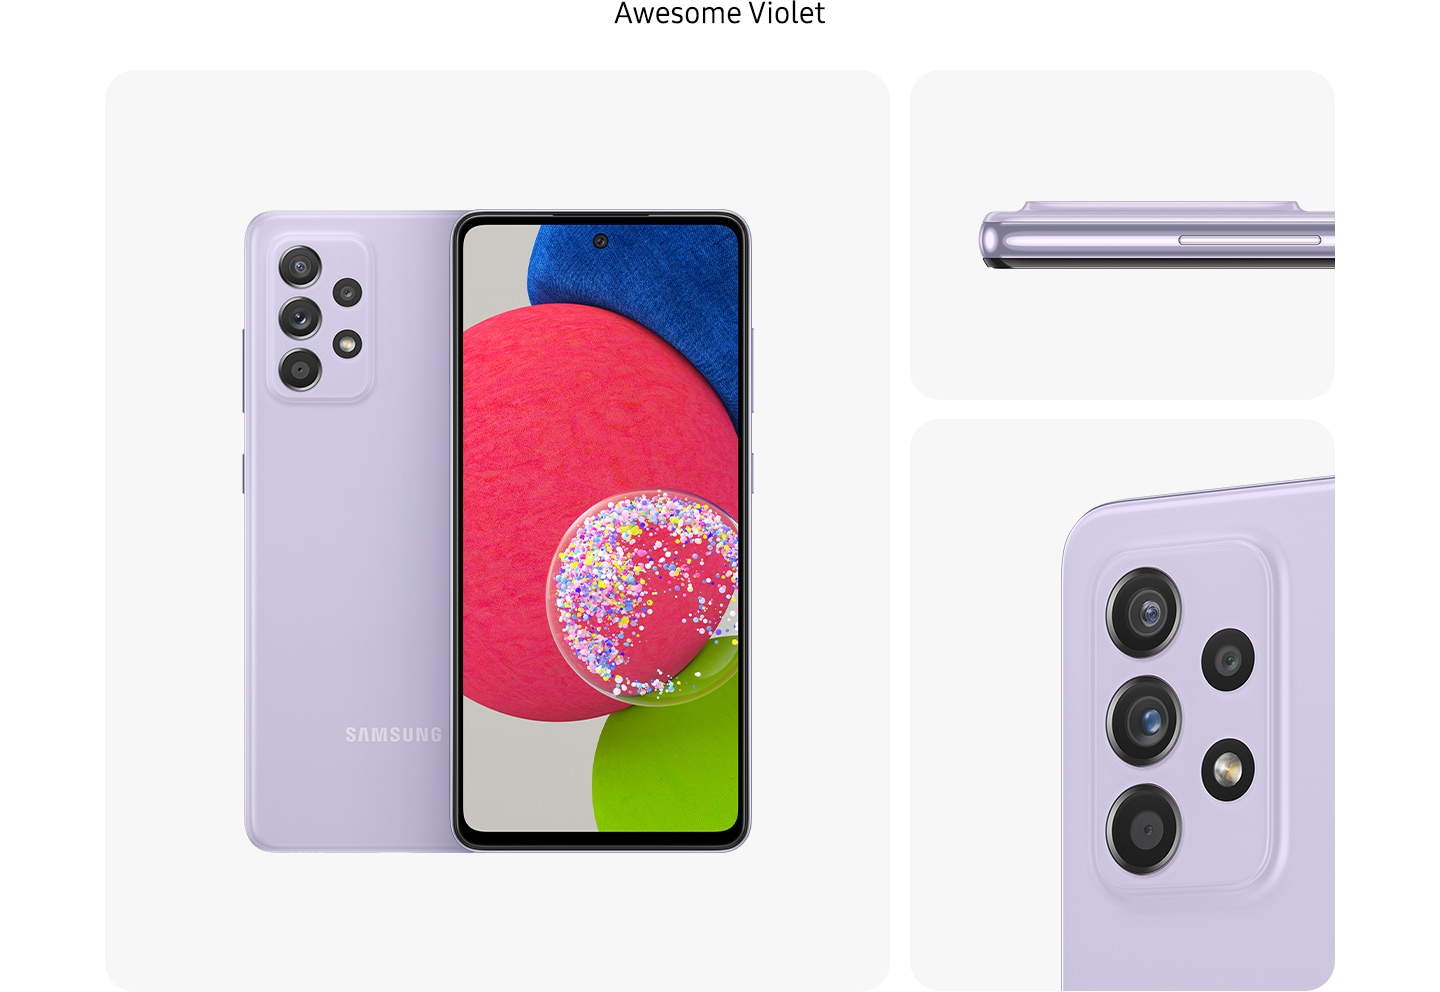 1. VioletGalaxy A52s 5G in Awesome Violet, seen from multiple angles to show the design: rear, front, side and close-up on the rear camera.